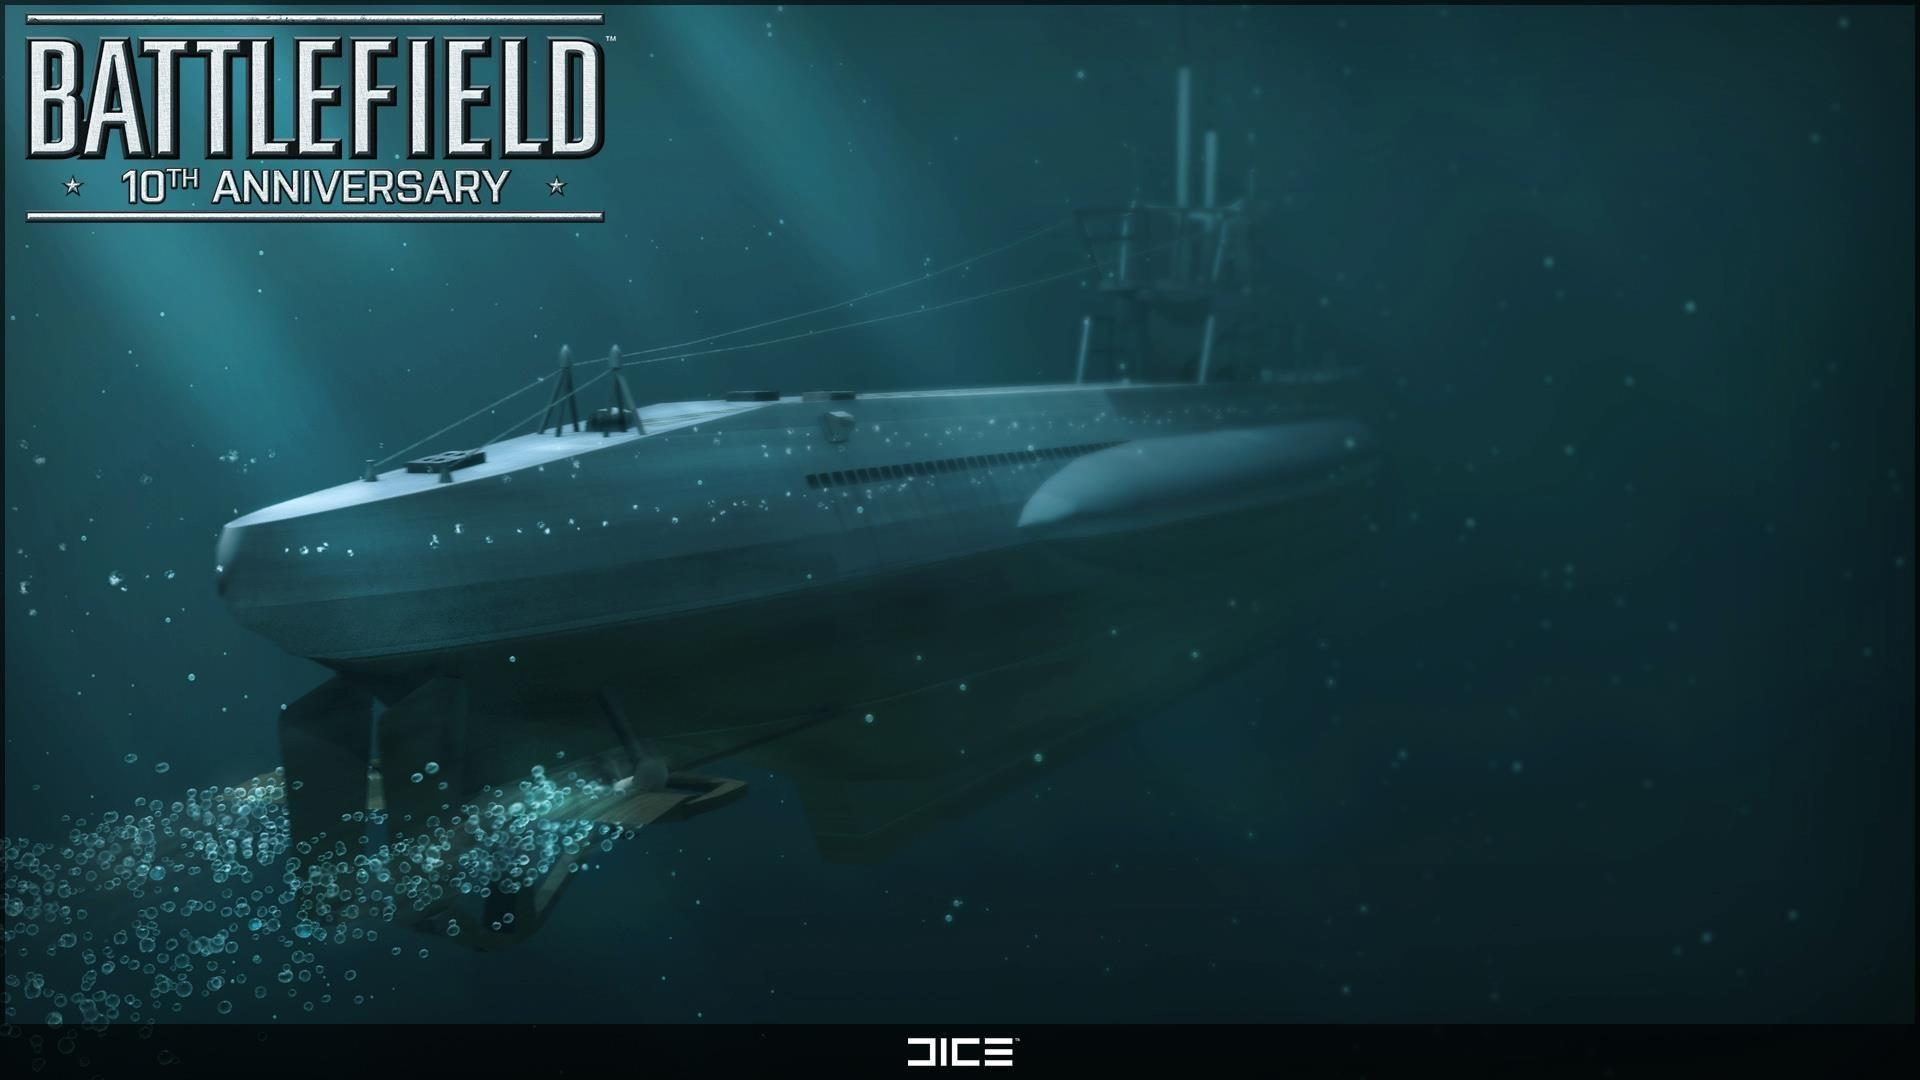 Water video games battlefield 1942 dice gaming wallpapers